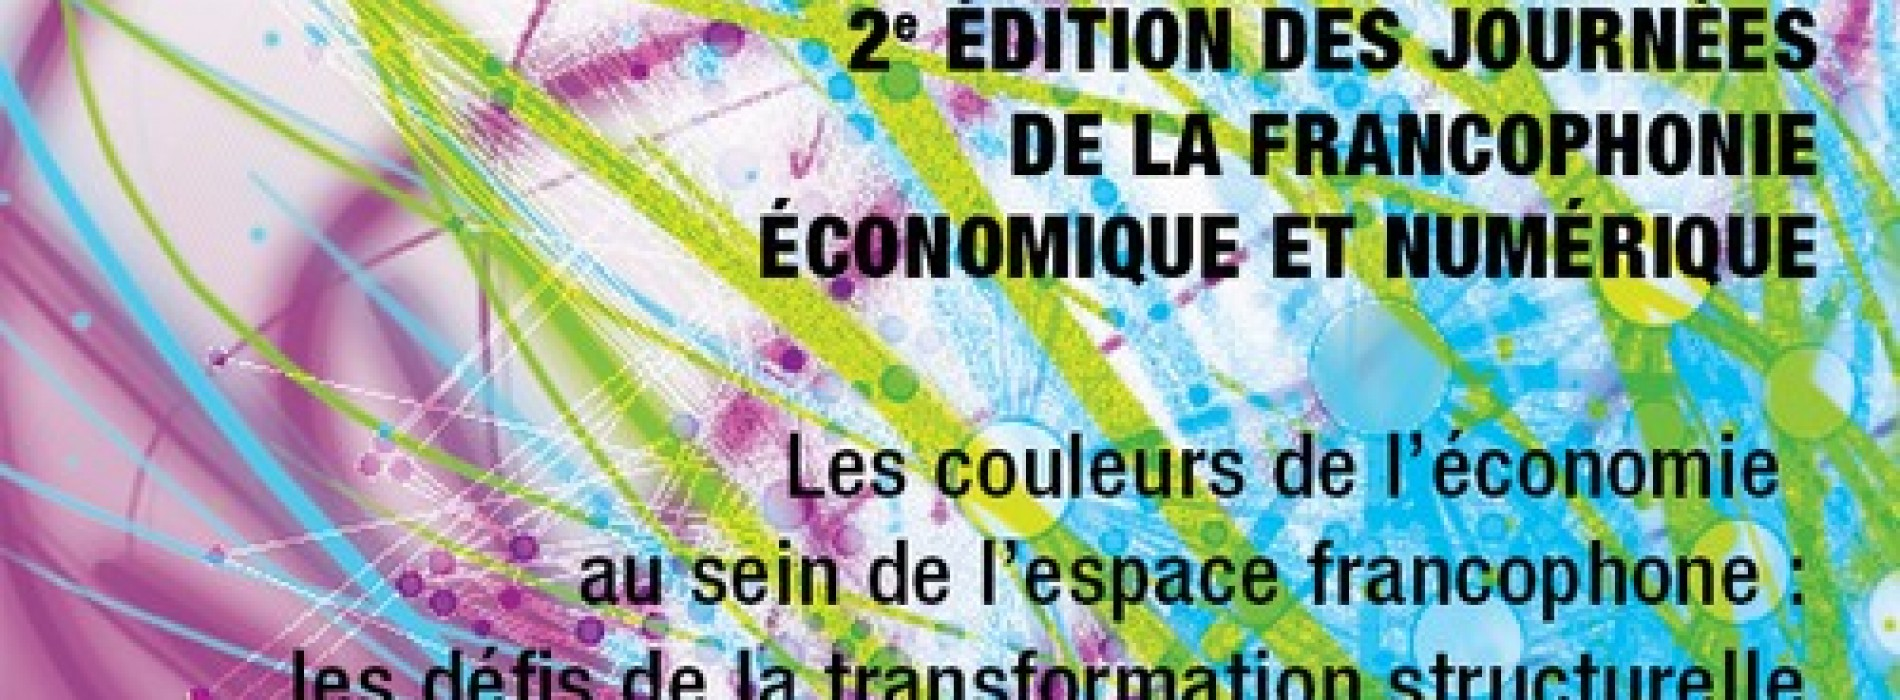 Francophonie: The colors of the economic and digital strategy